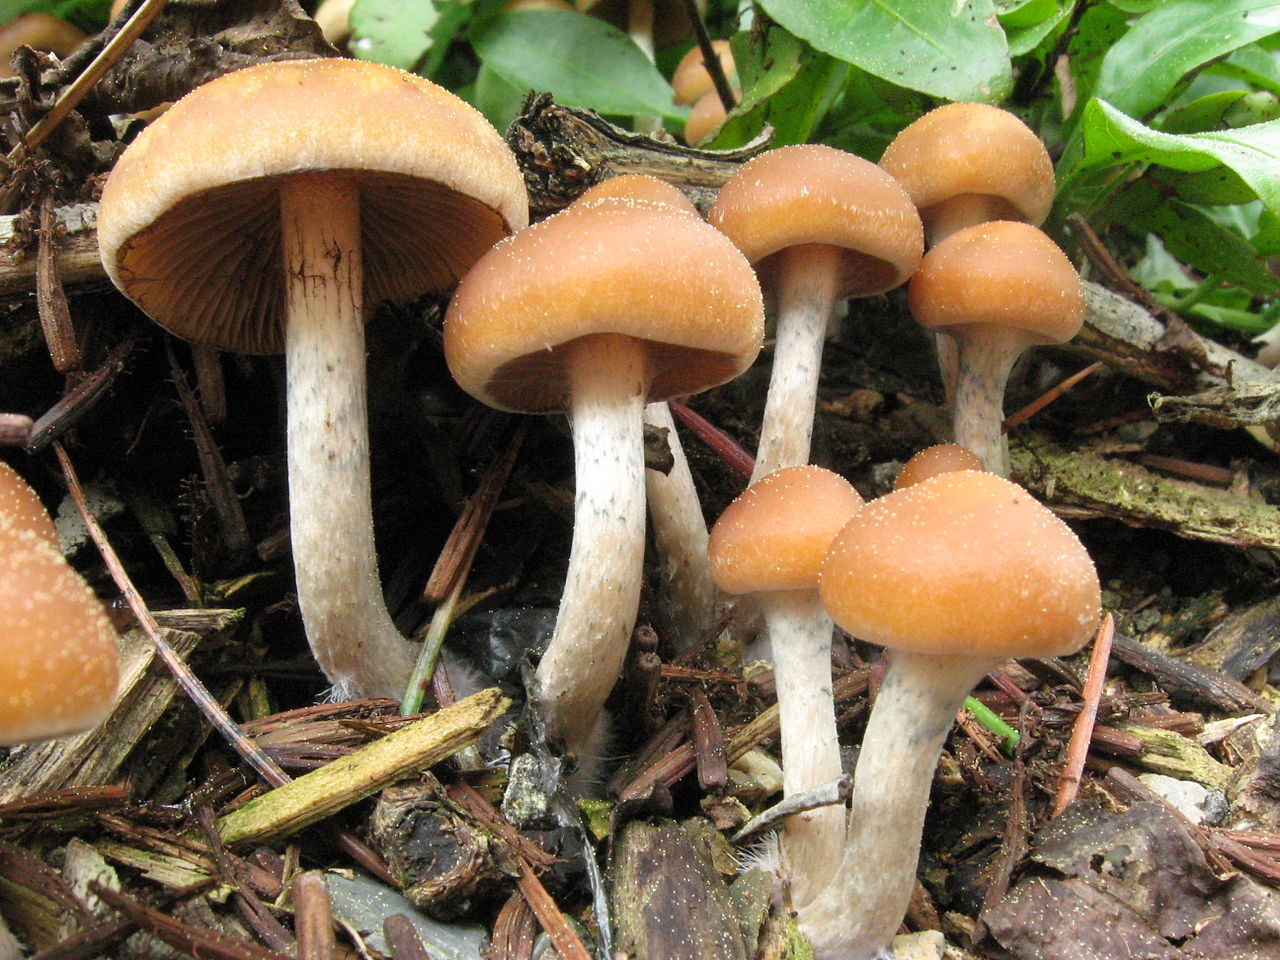 Magic mushrooms - Psilocybe cyanofriscosa